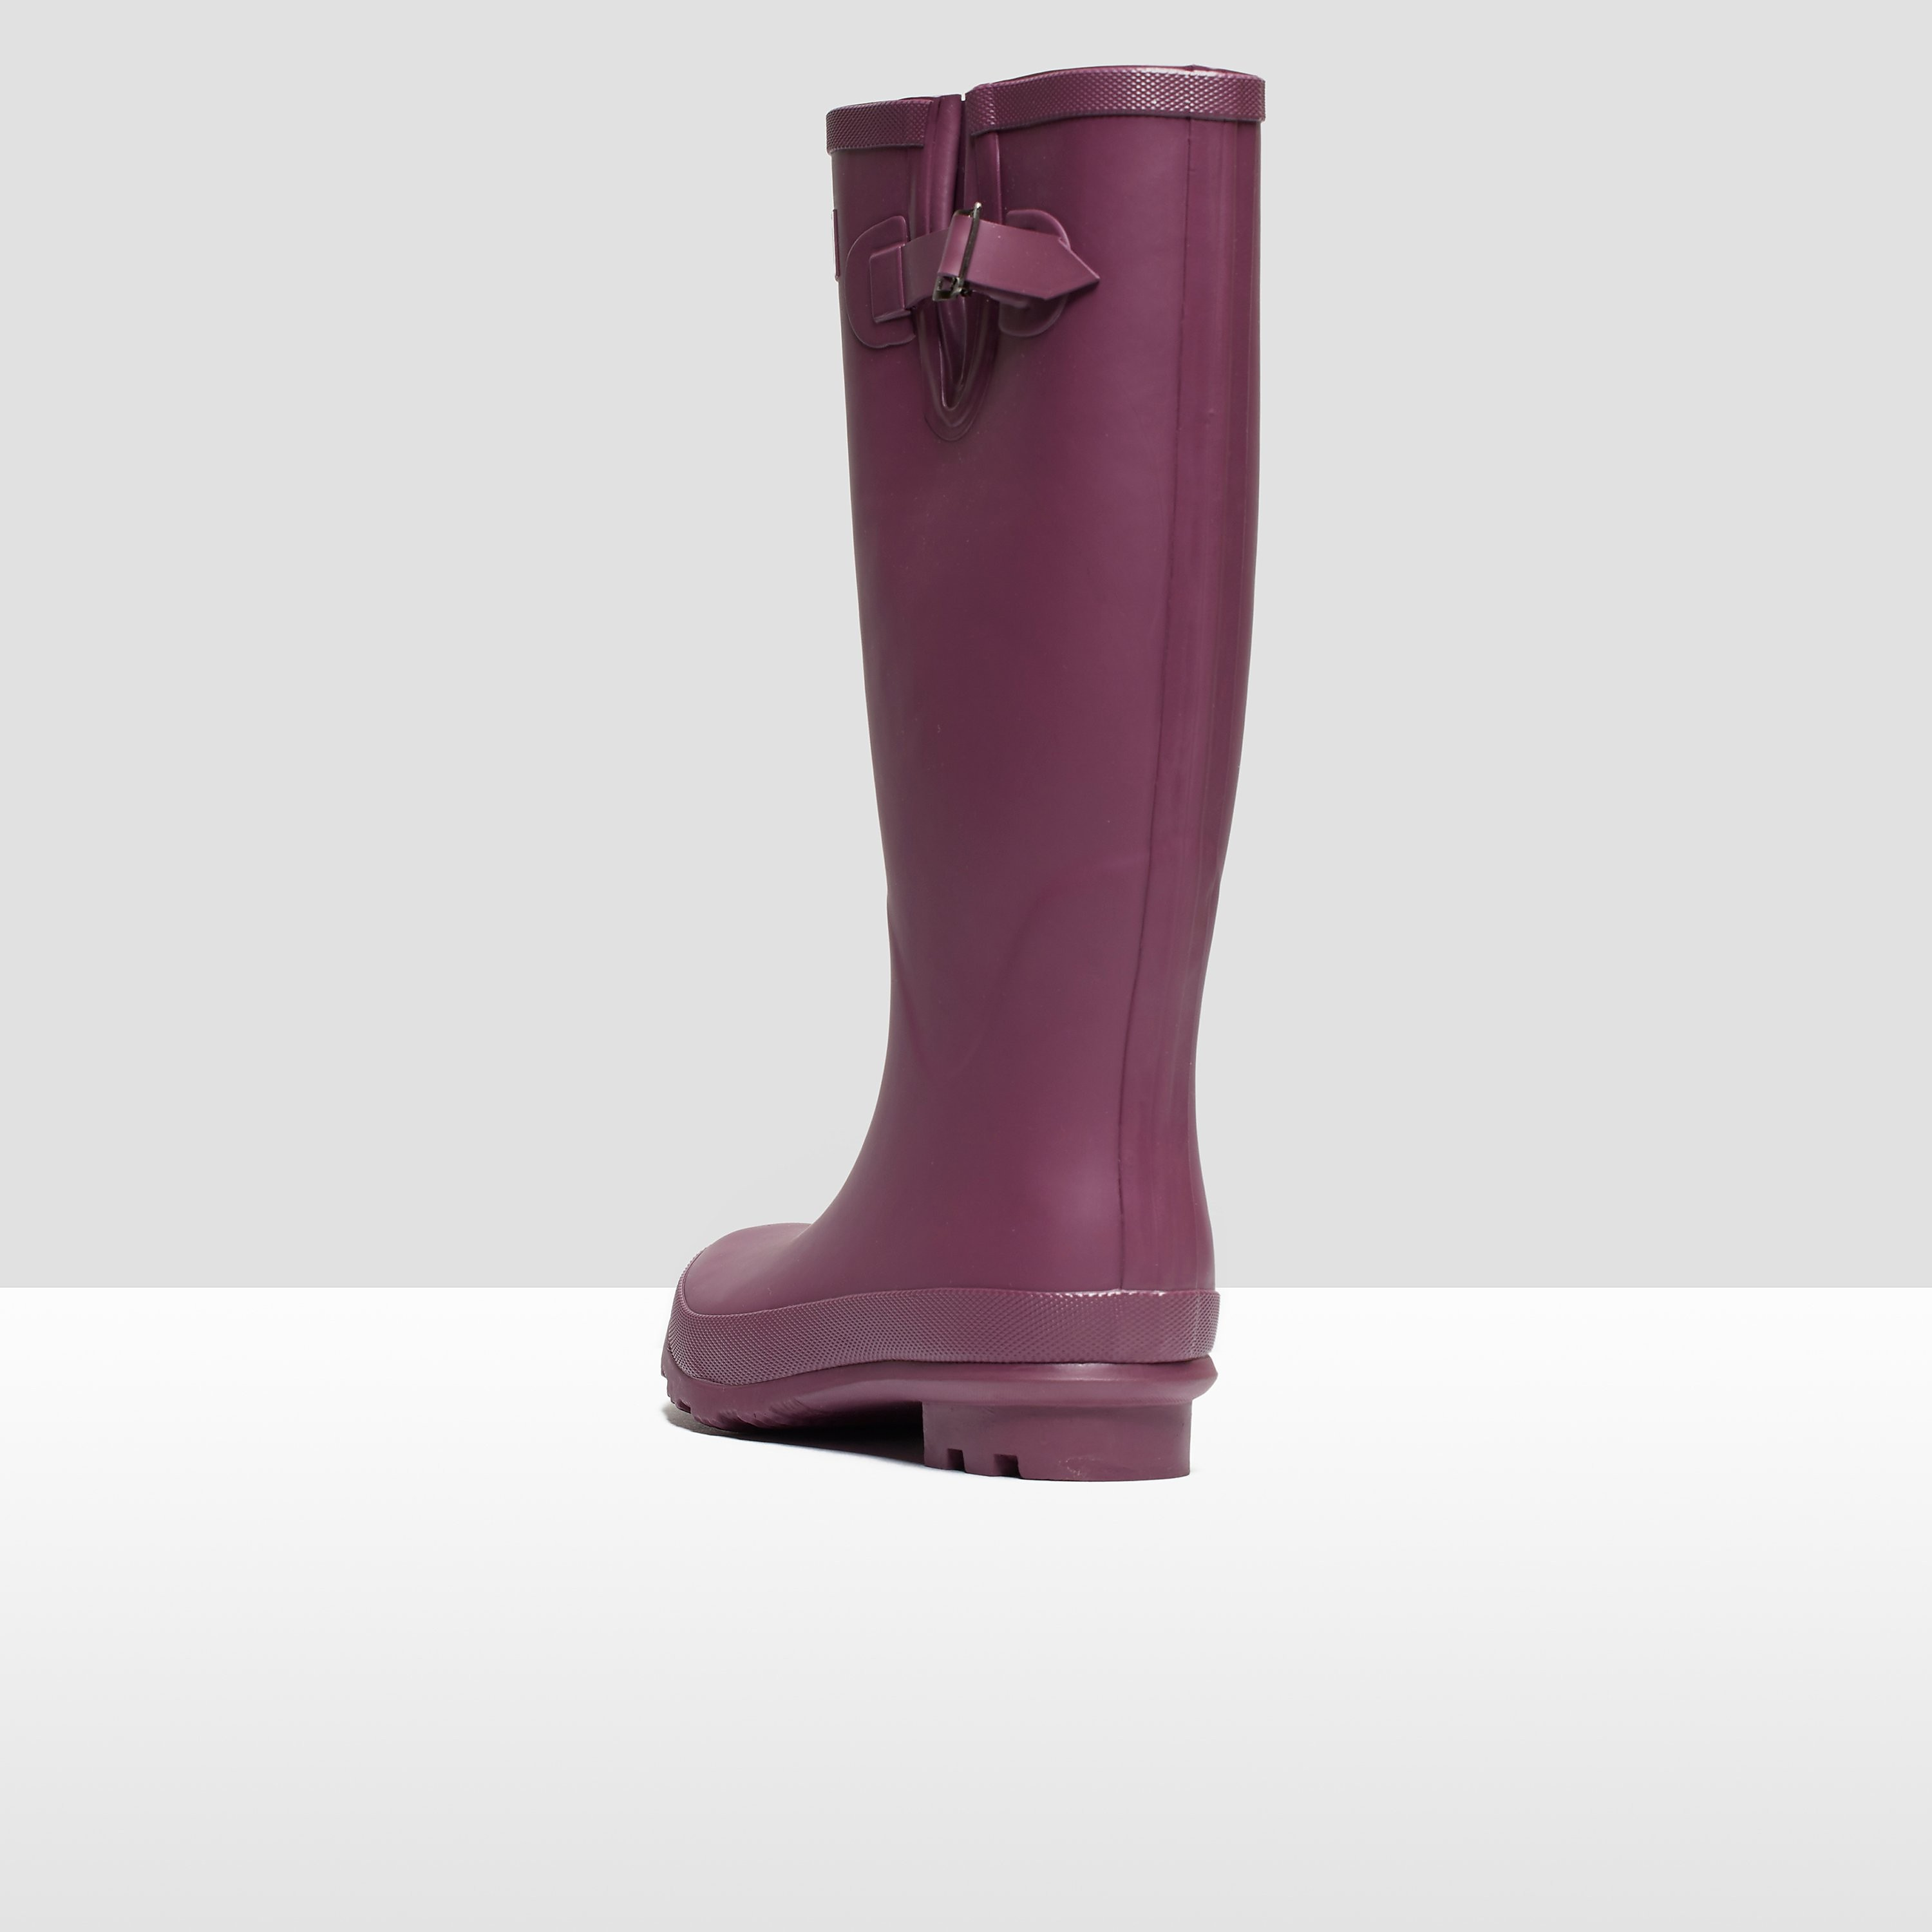 Peter Storm Long Gusseted Women's Wellies